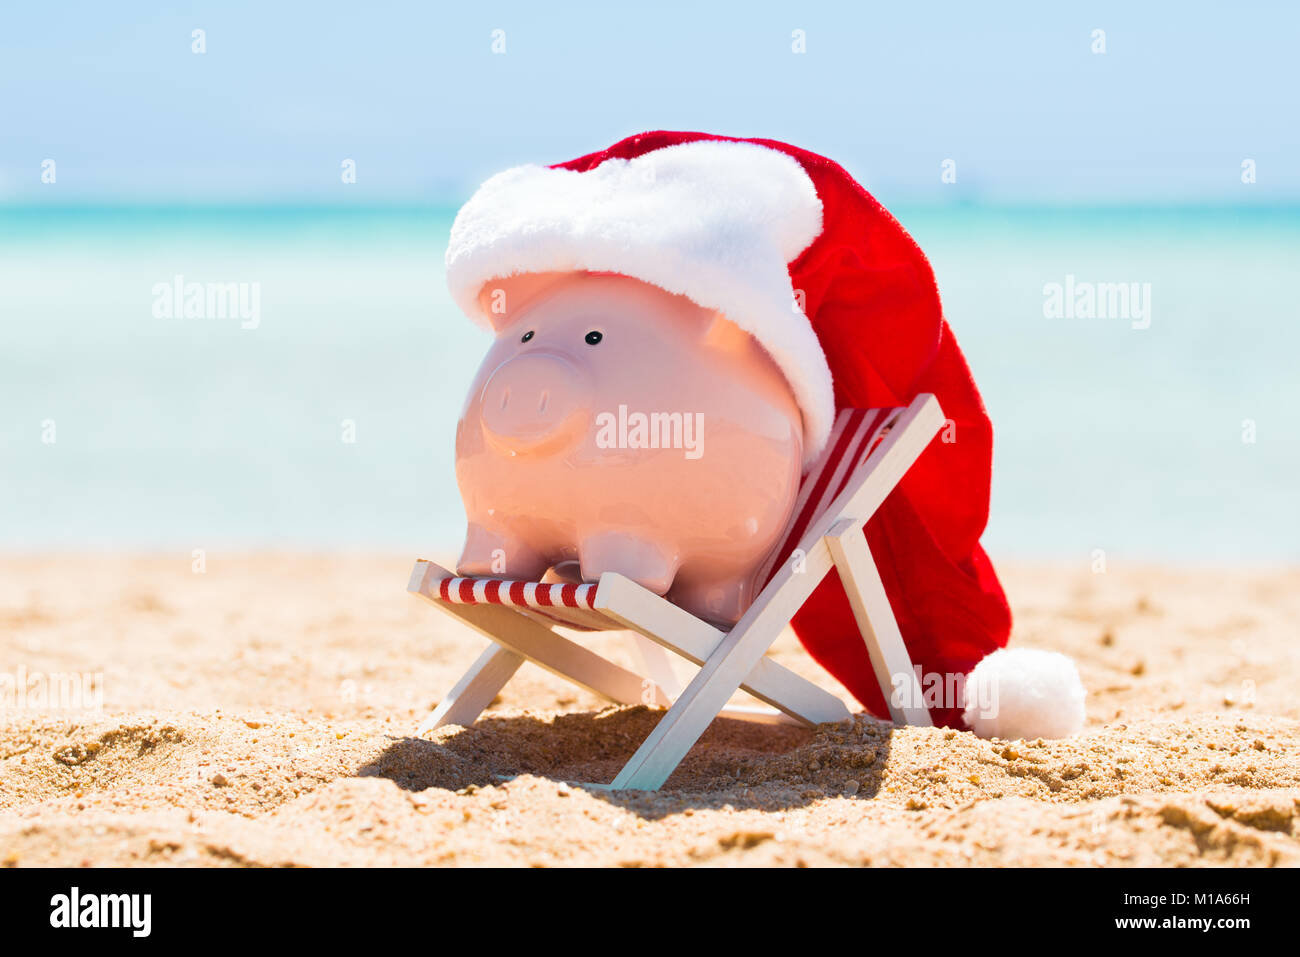 A Pink Piggy Bank With Santa Hat Kept On The Deck Chair At Beach - Stock Image